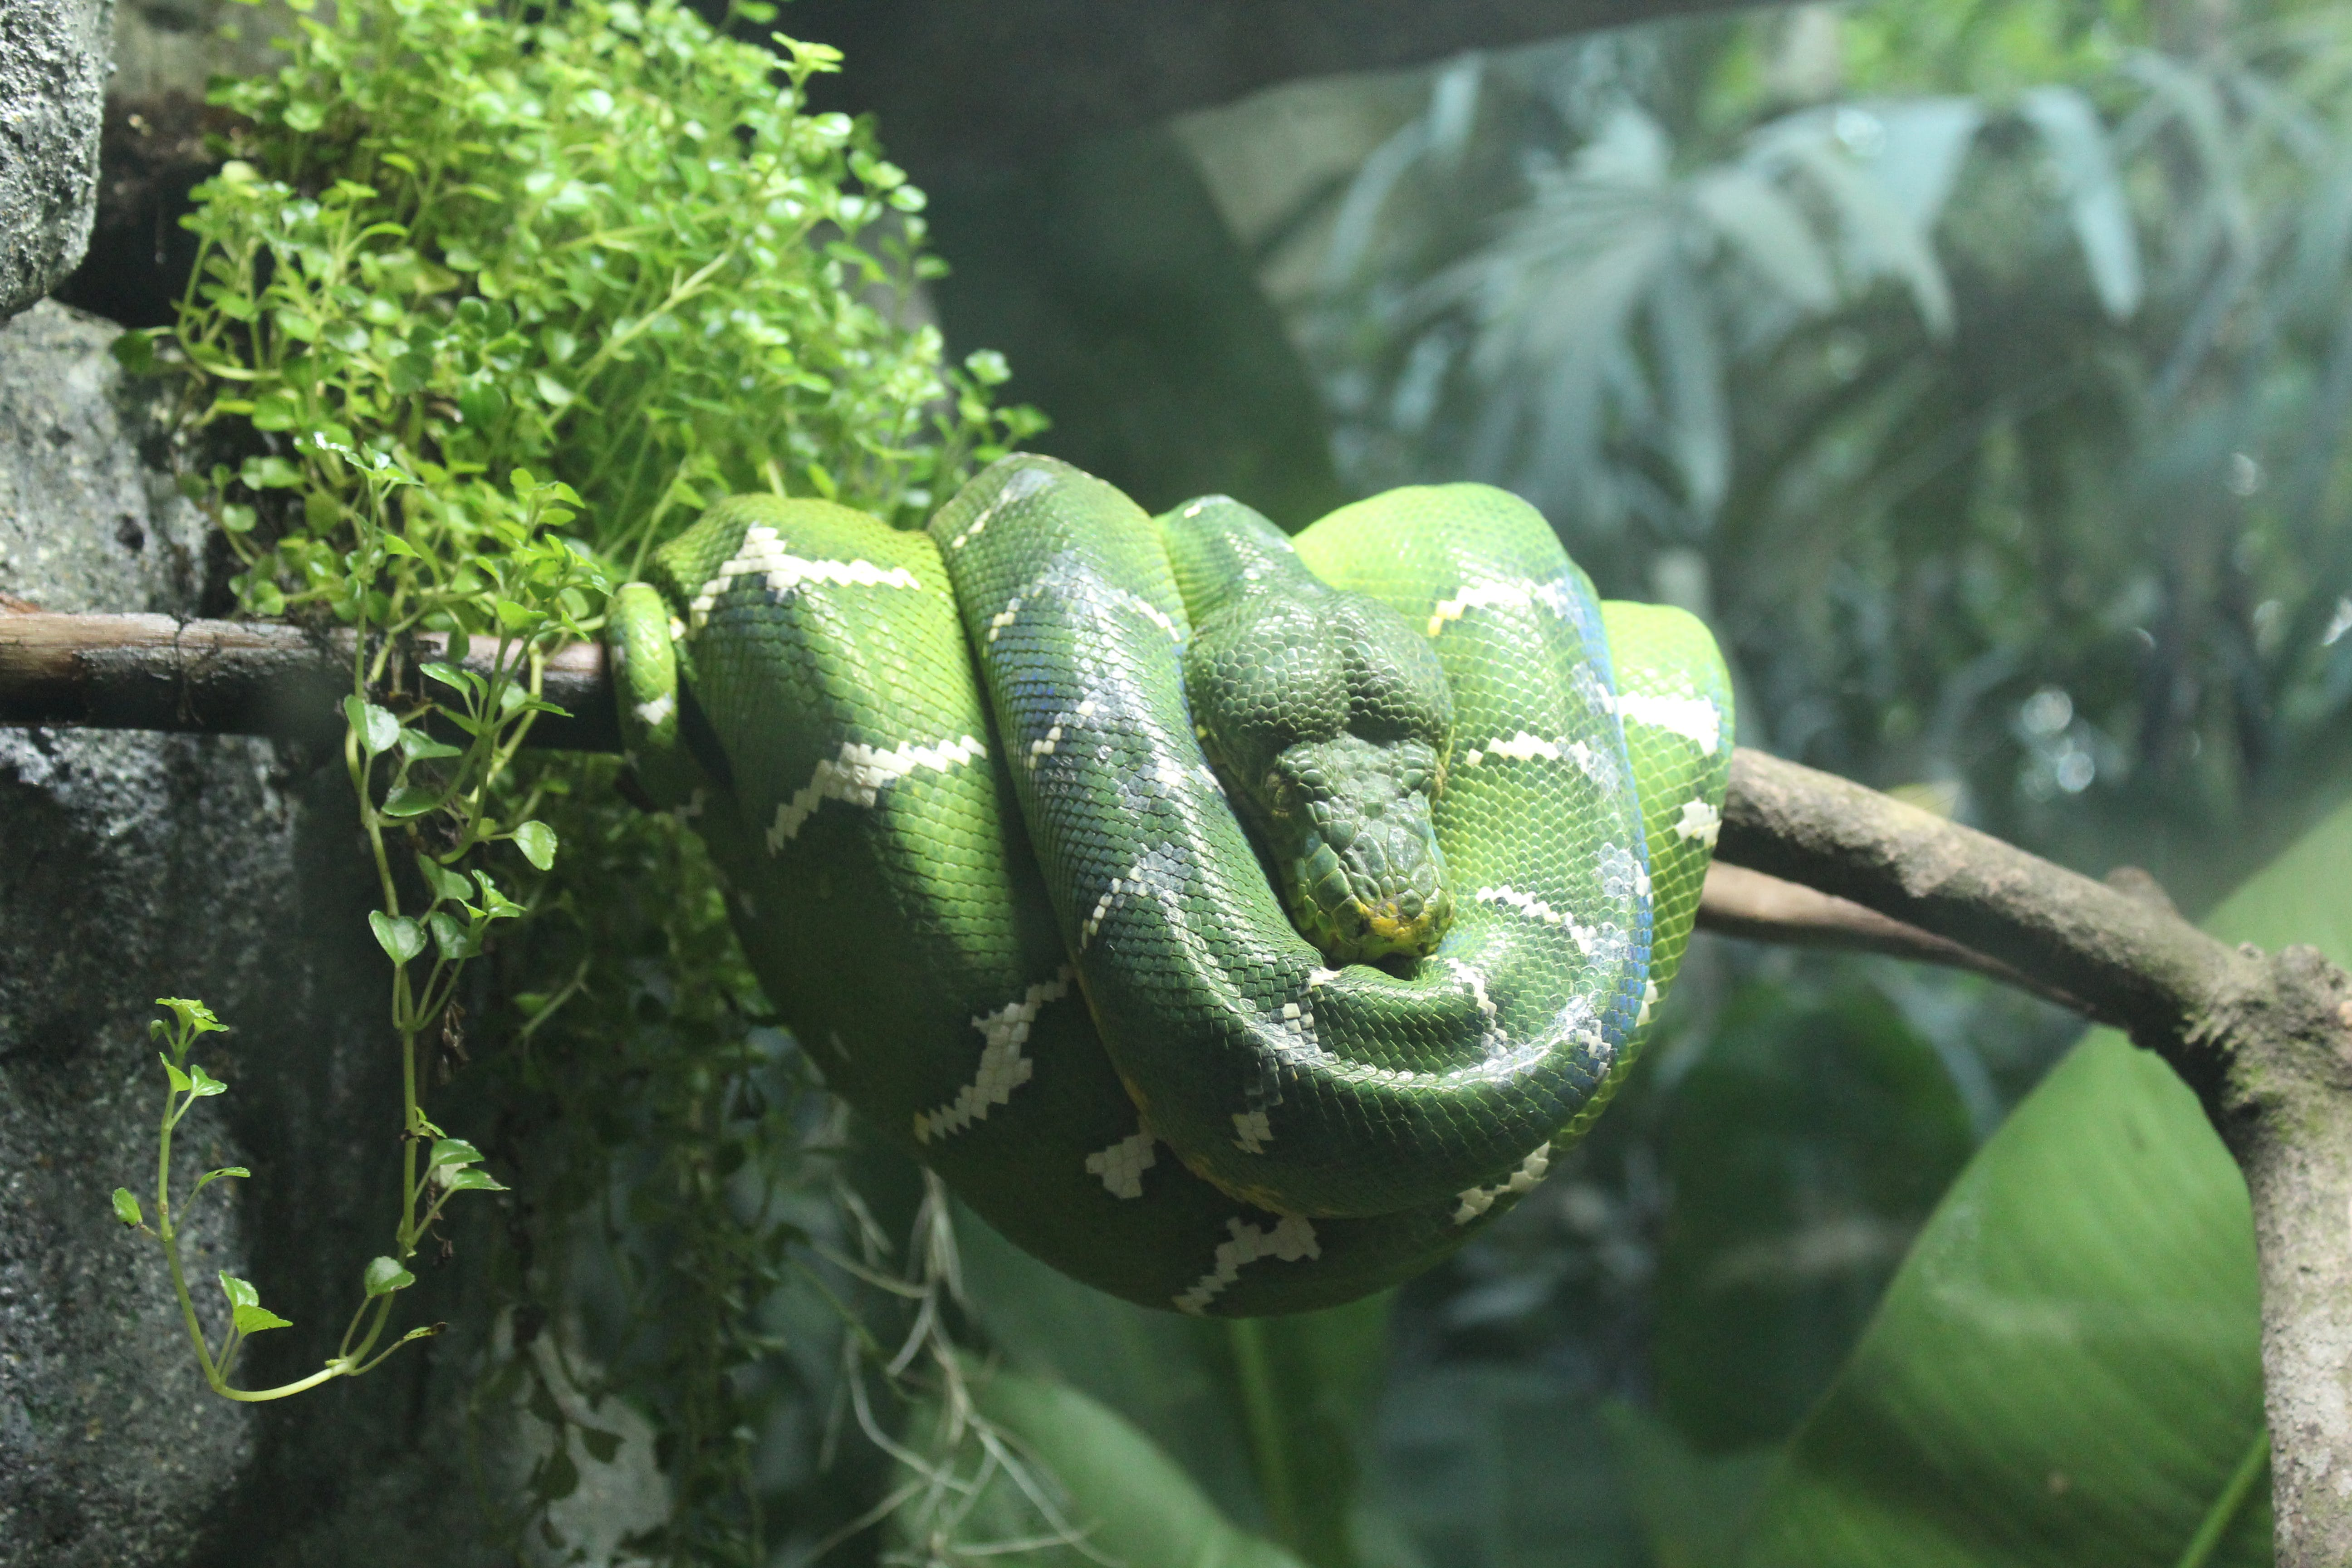 Green and White Snake on Branch